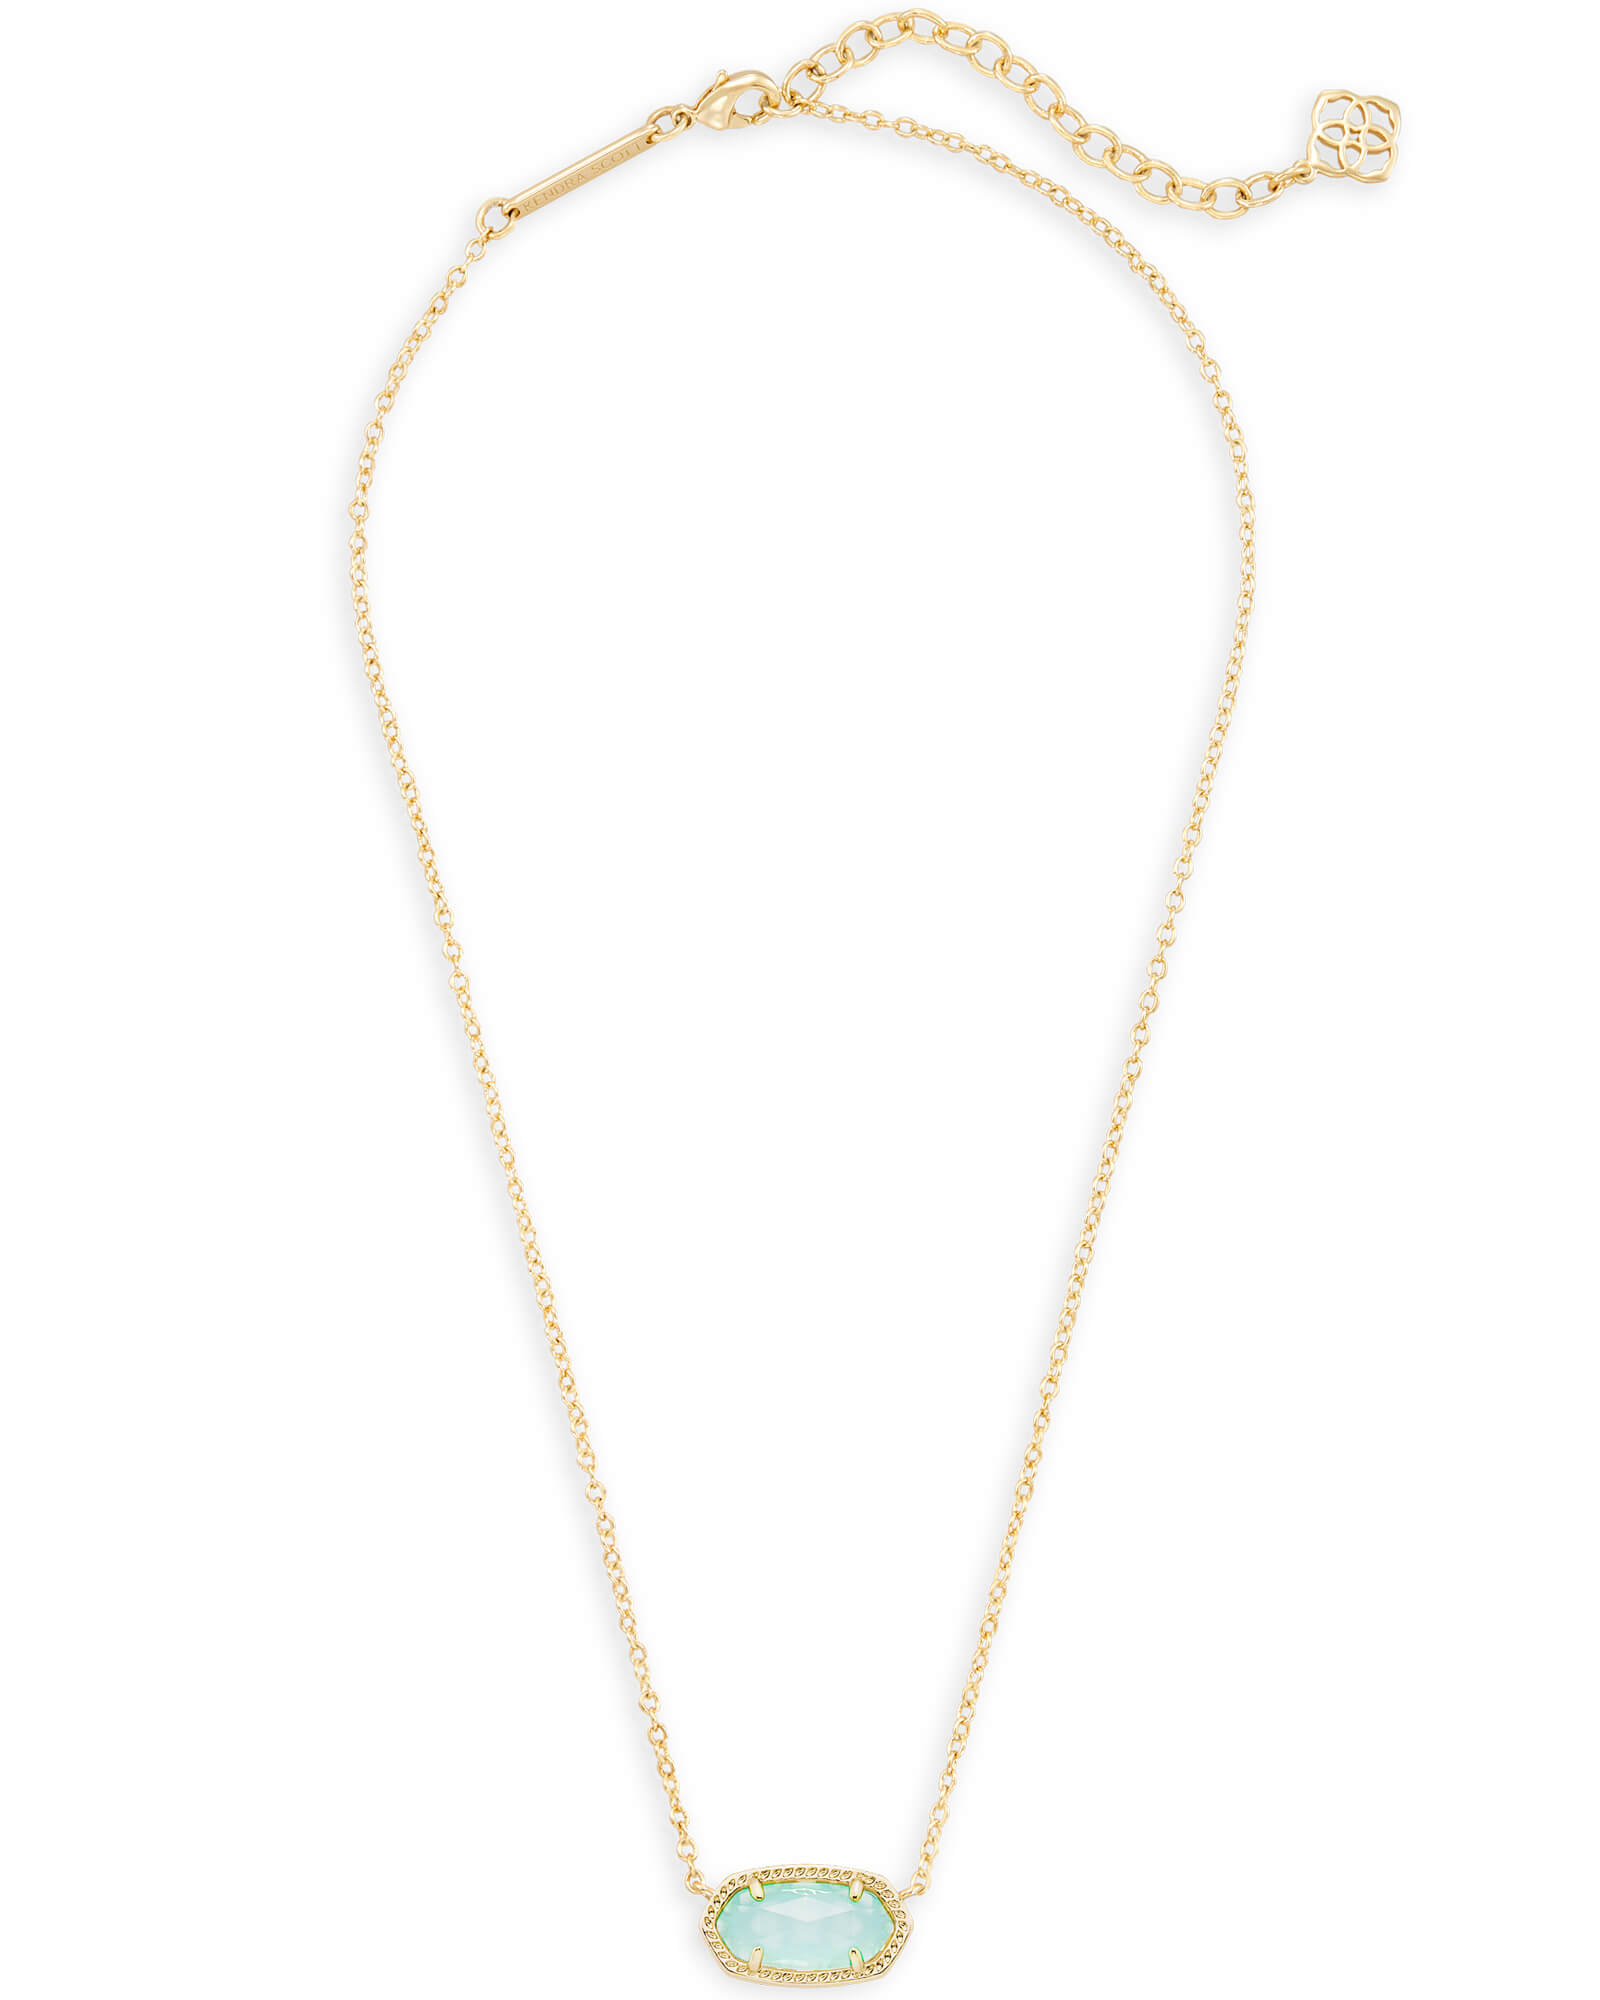 Elisa Gold Pendant Necklace in Chalcedony Glass